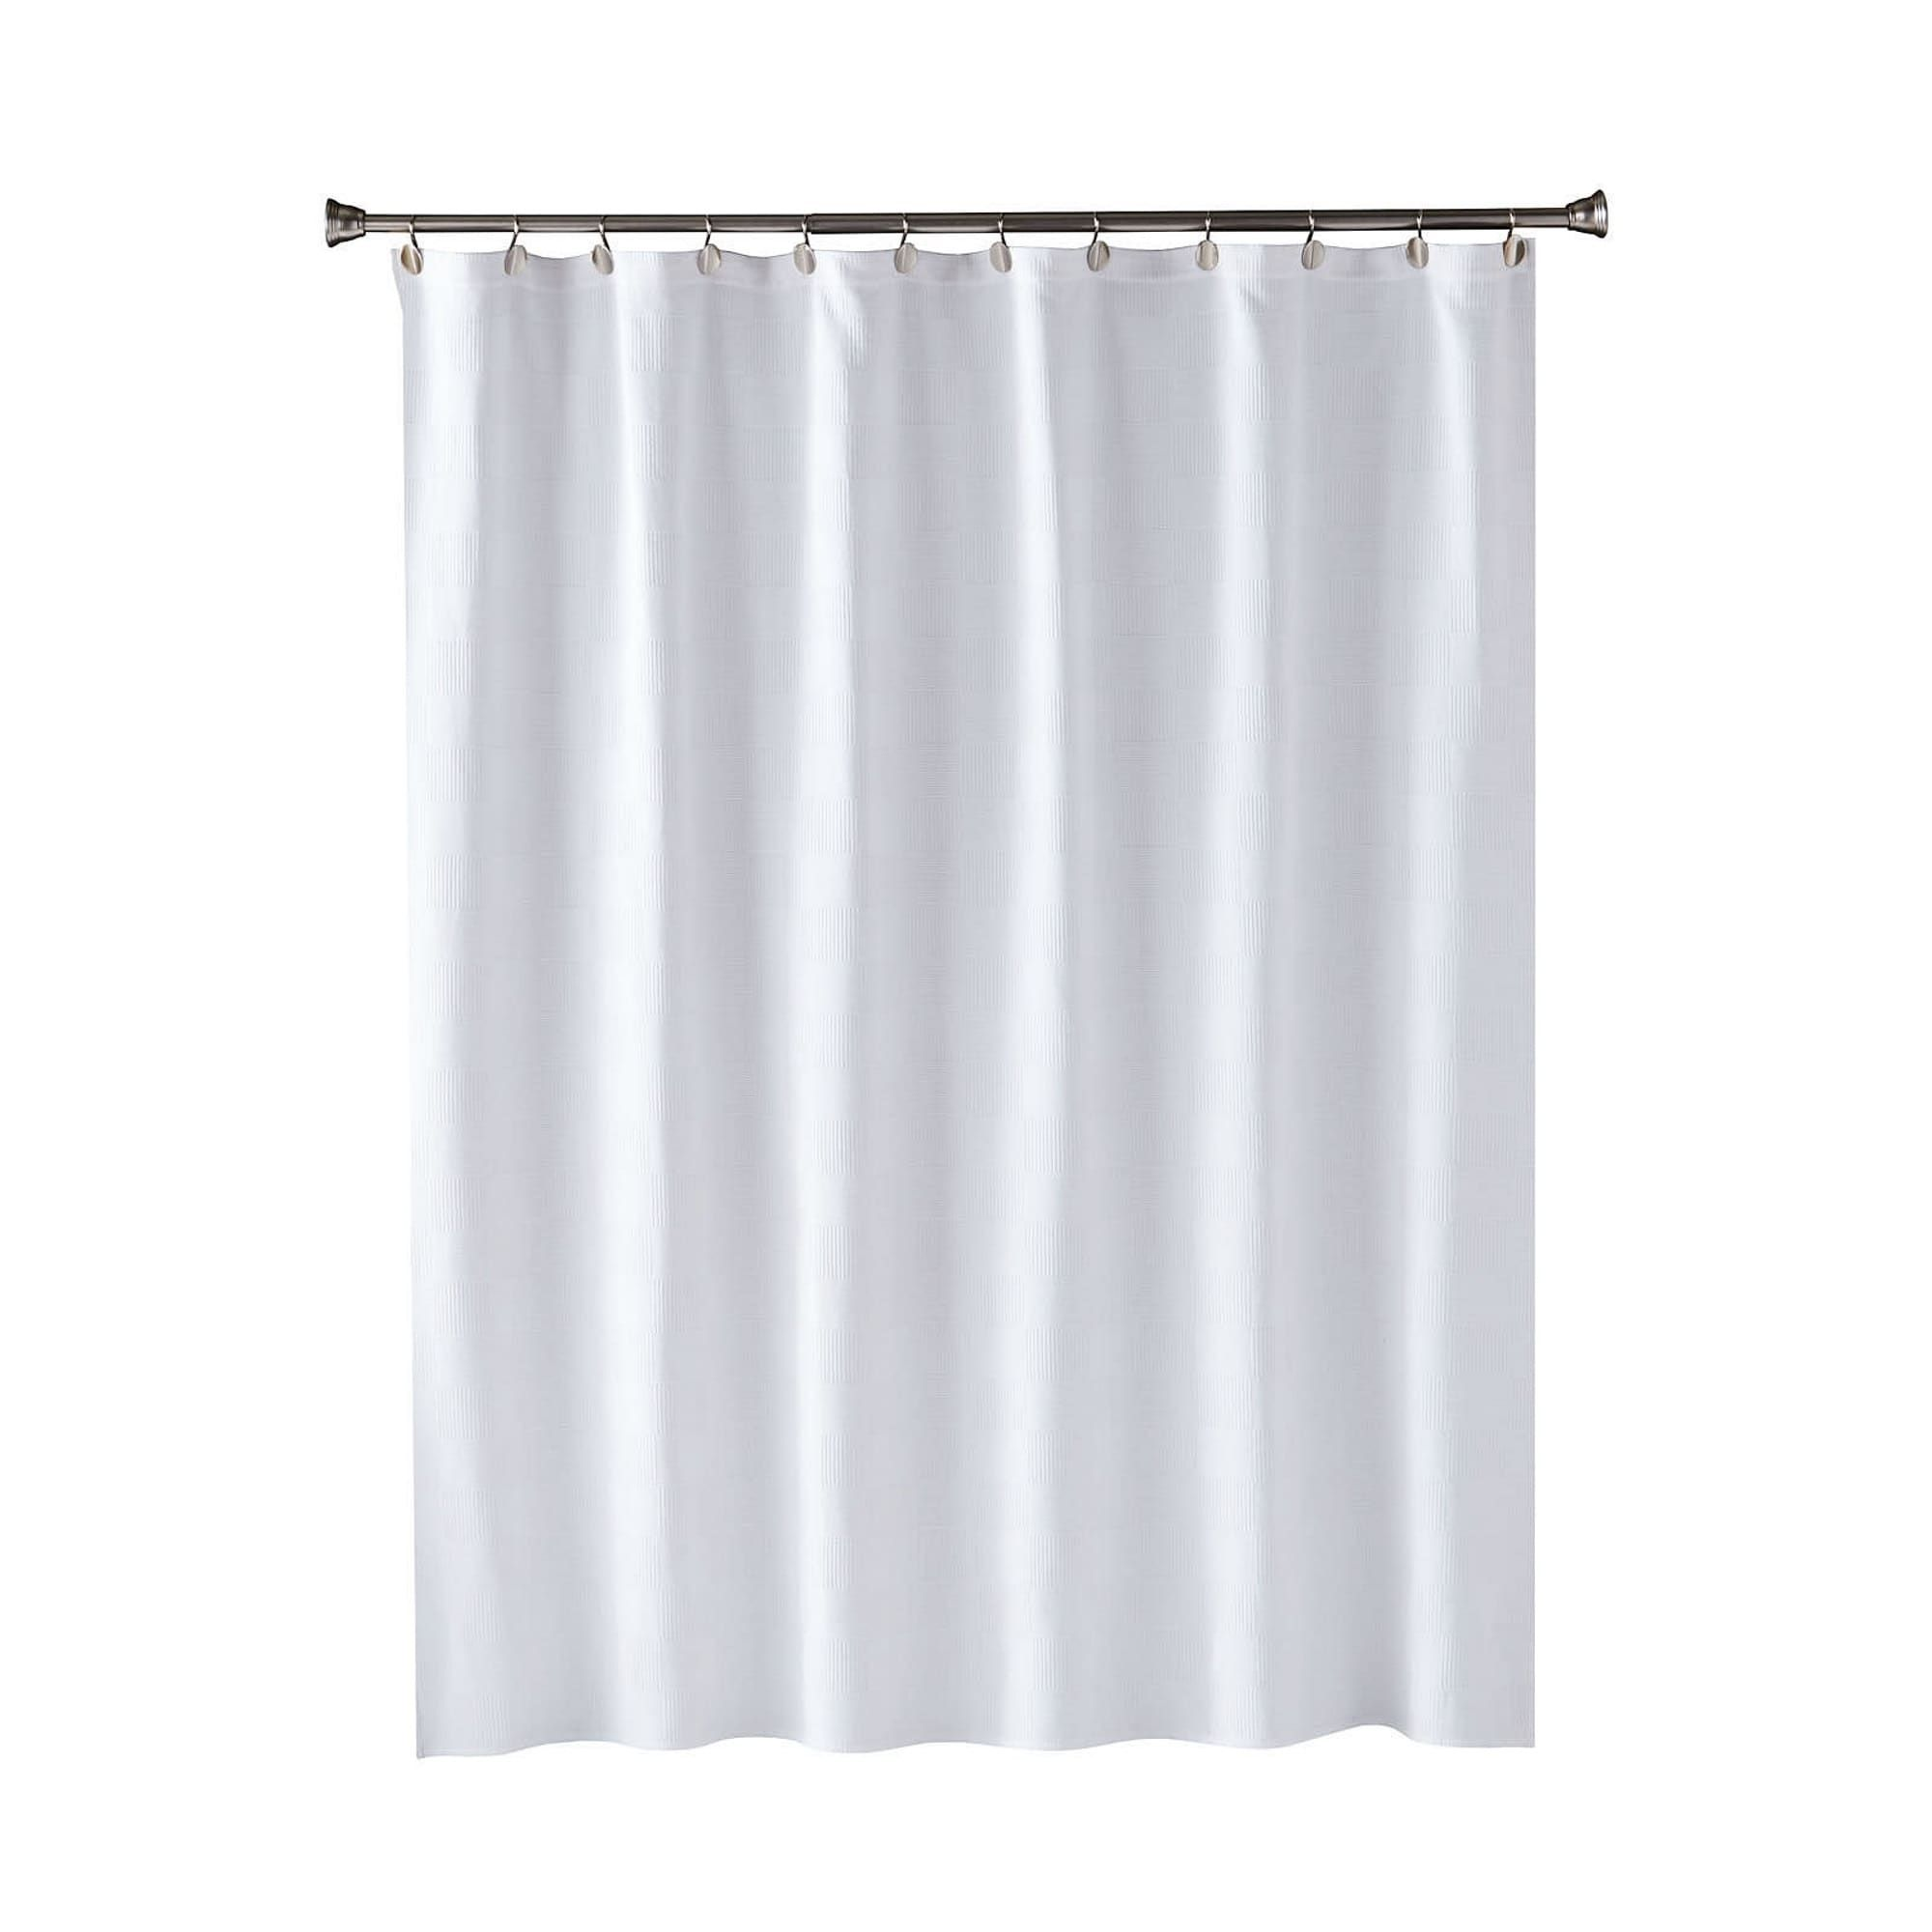 Skl Home Large Basketweave Shower Curtain In White 70 X 72